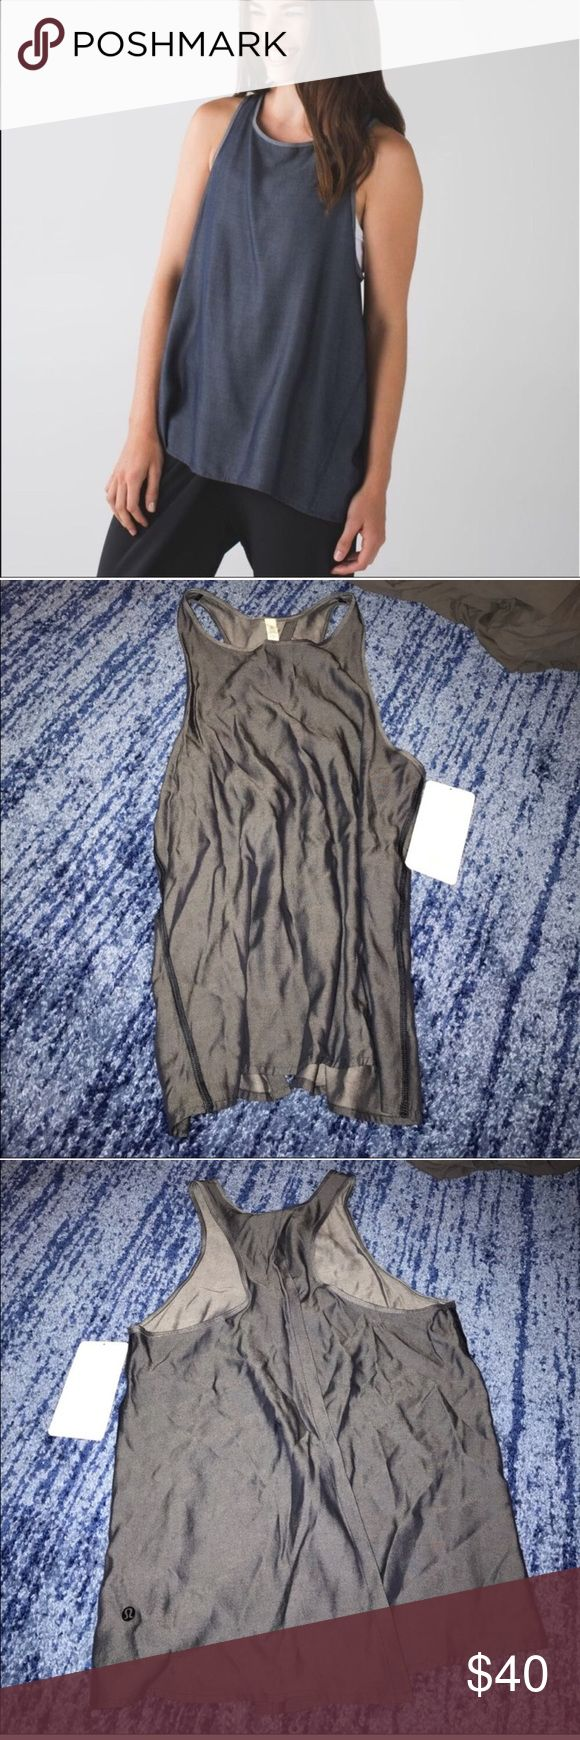 Lululemon all tied up size 8 All tied up tank. Size 8 new with tags. Tencel fabric lululemon athletica Tops Tank Tops